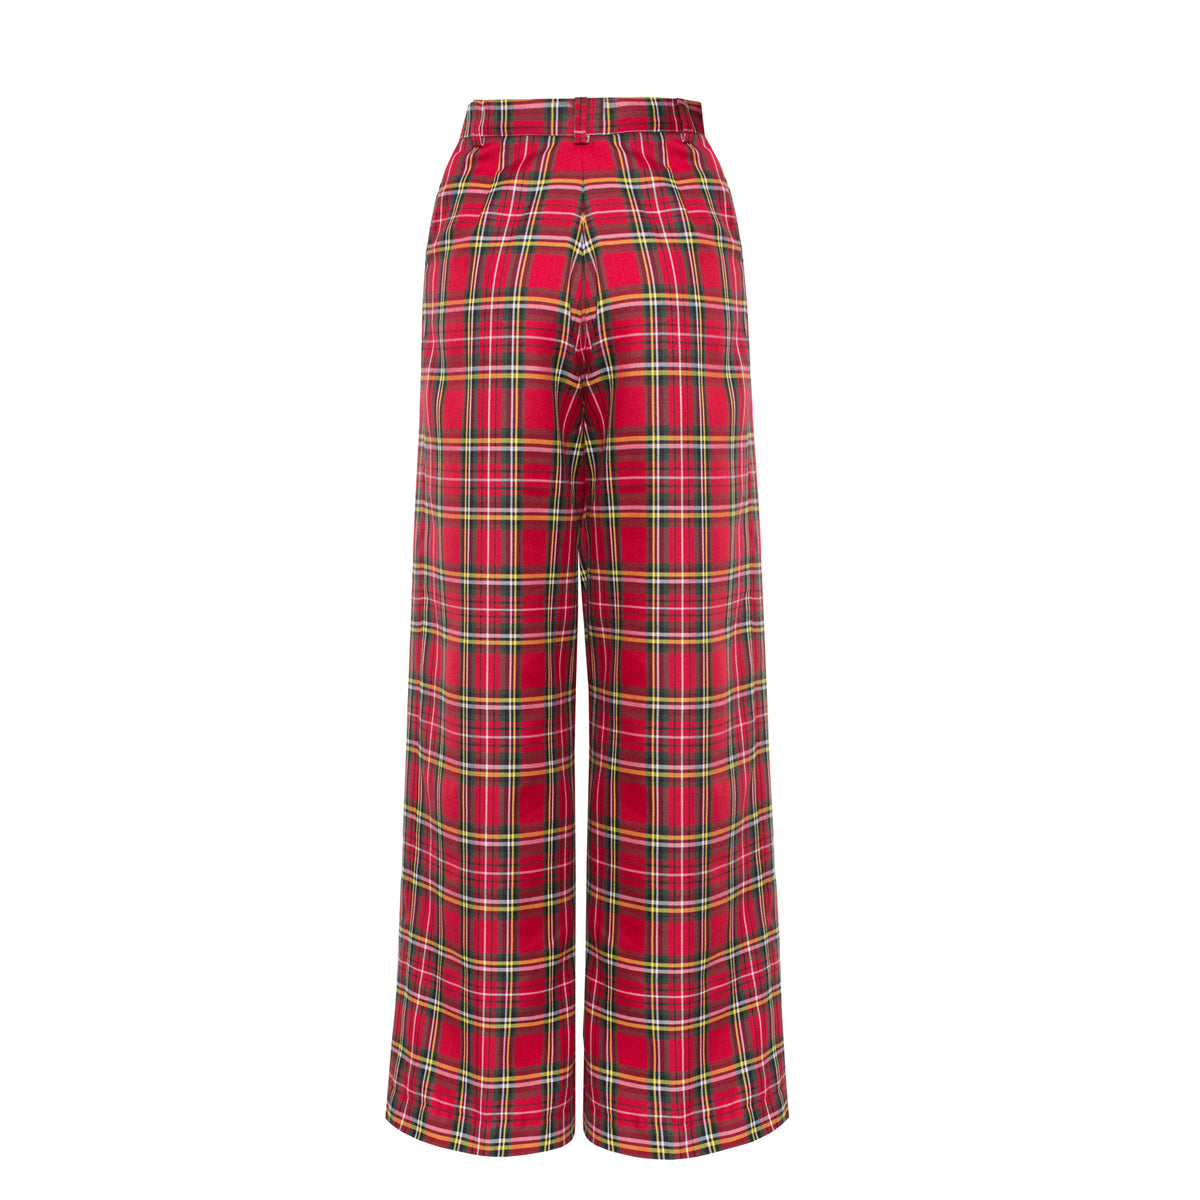 Reality Check Red high-rise trousers - VOLS & ORIGINAL